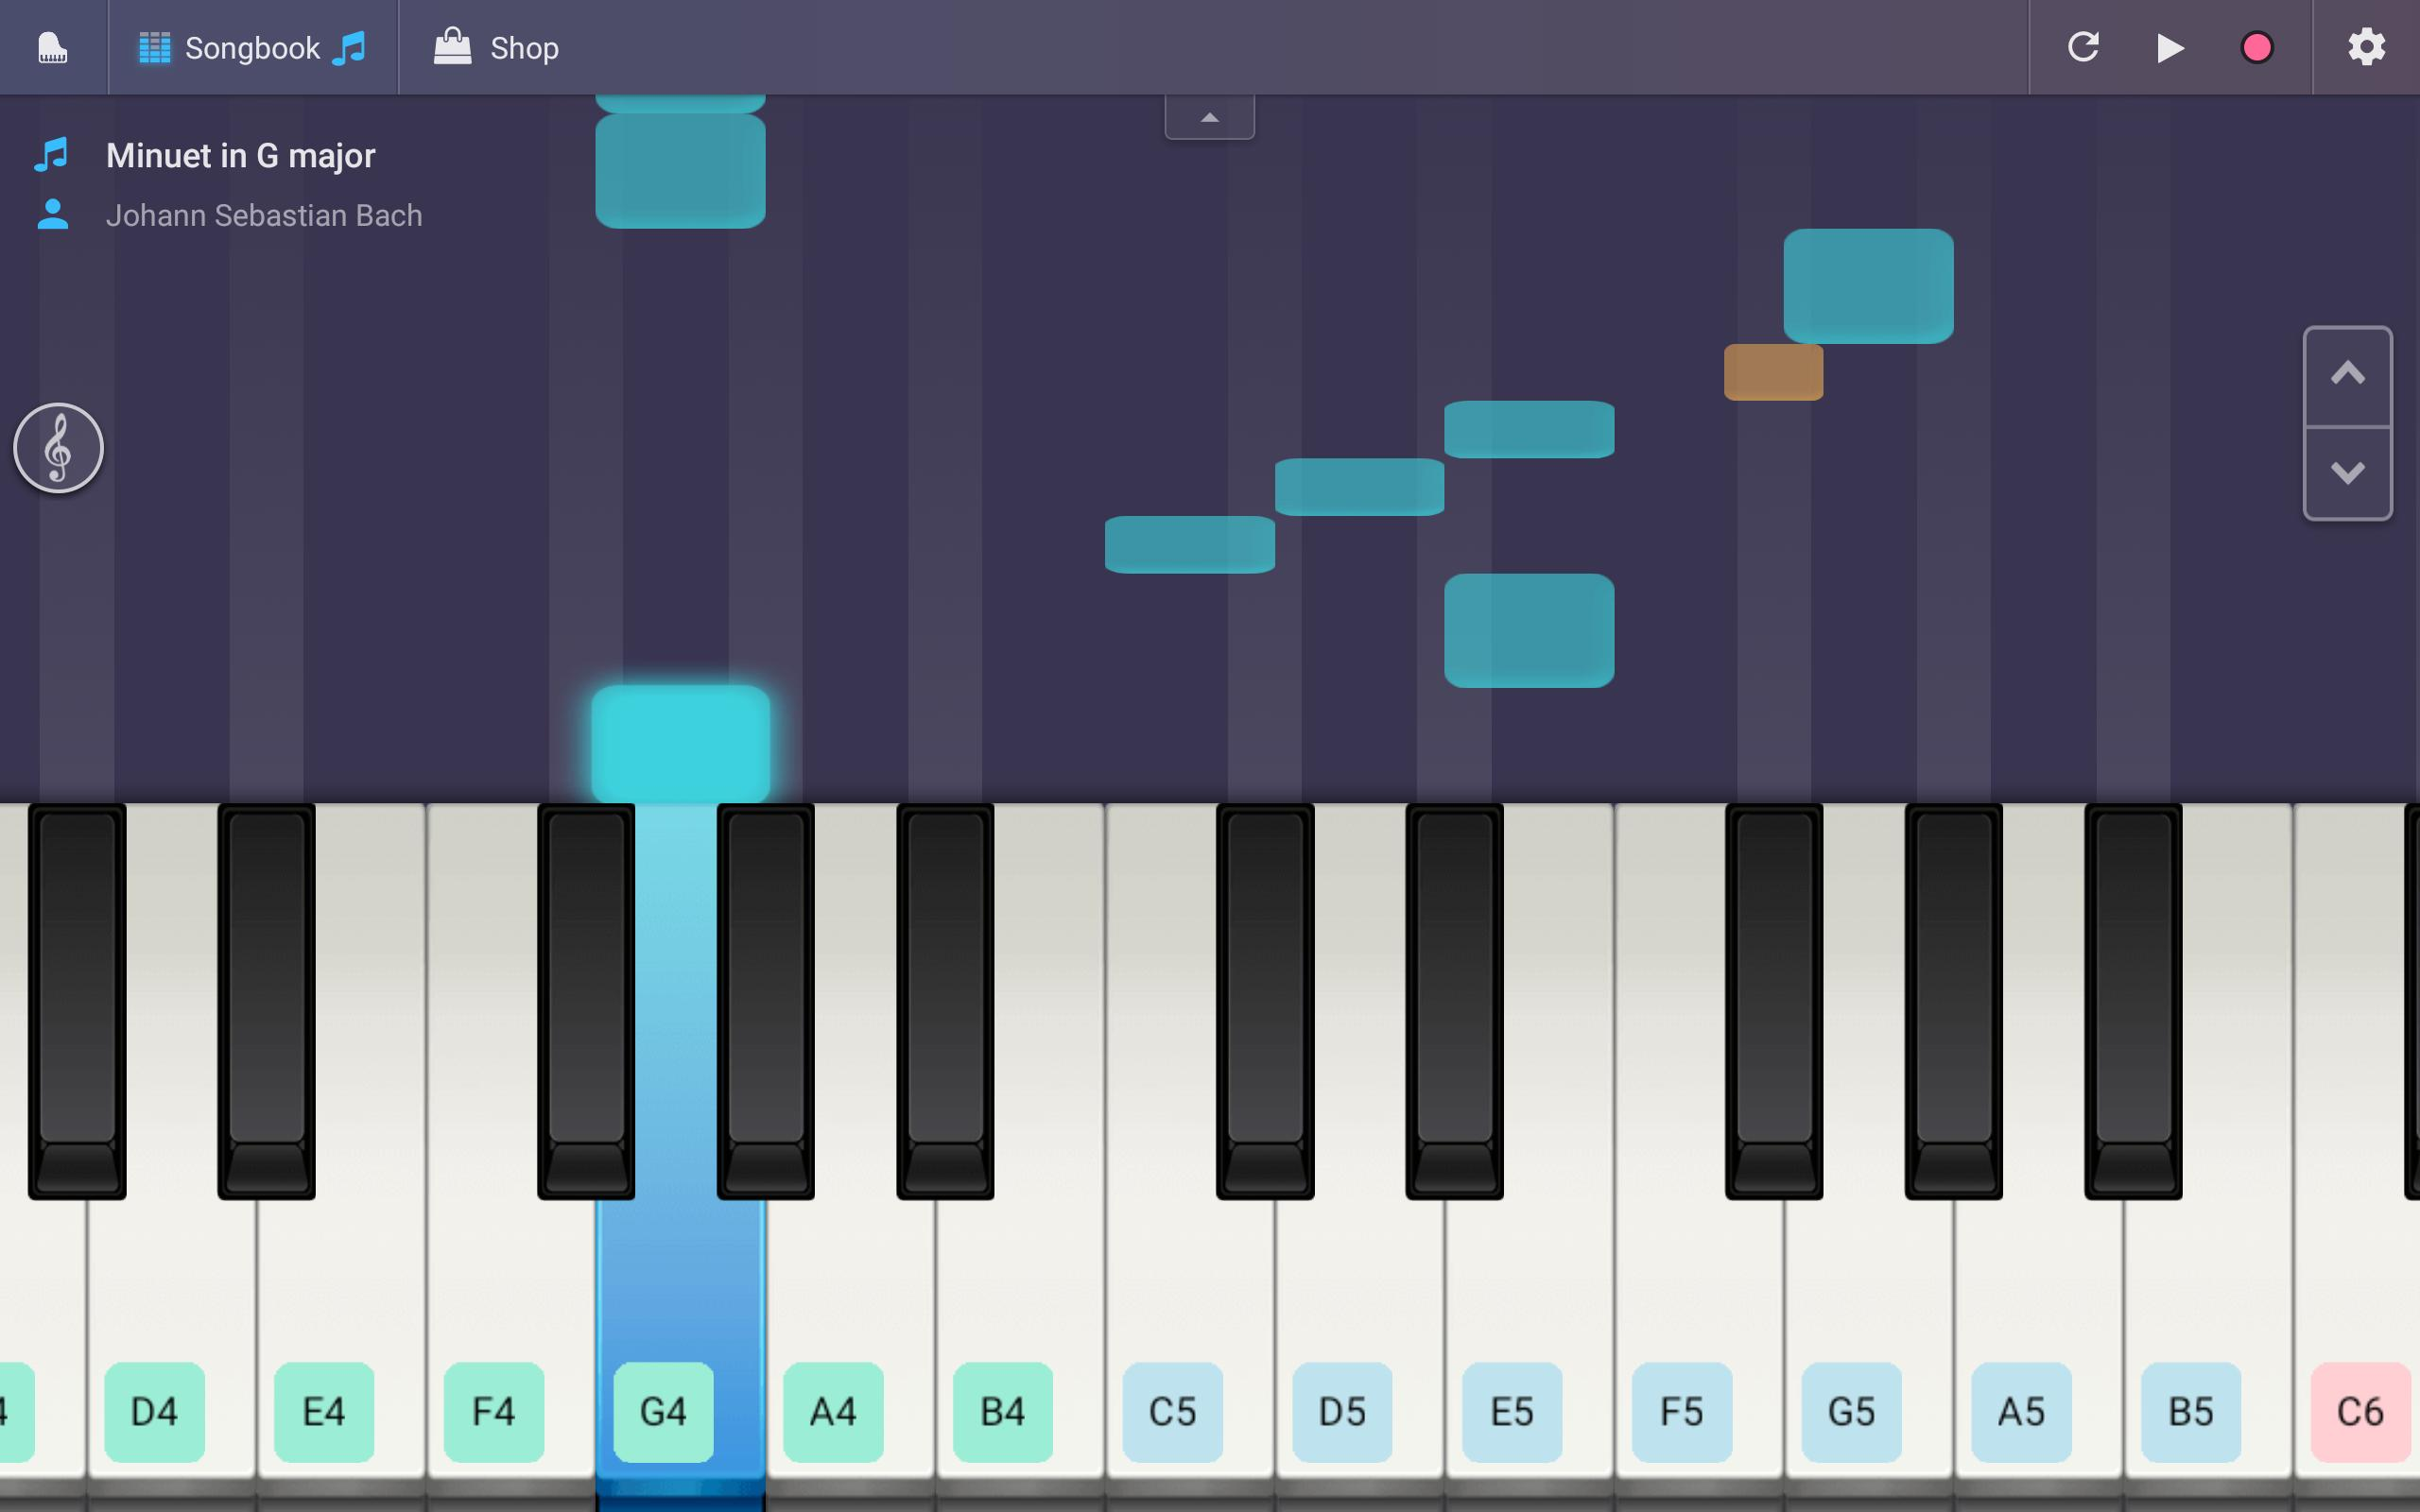 Pianist Hd Beta For Android Apk Download